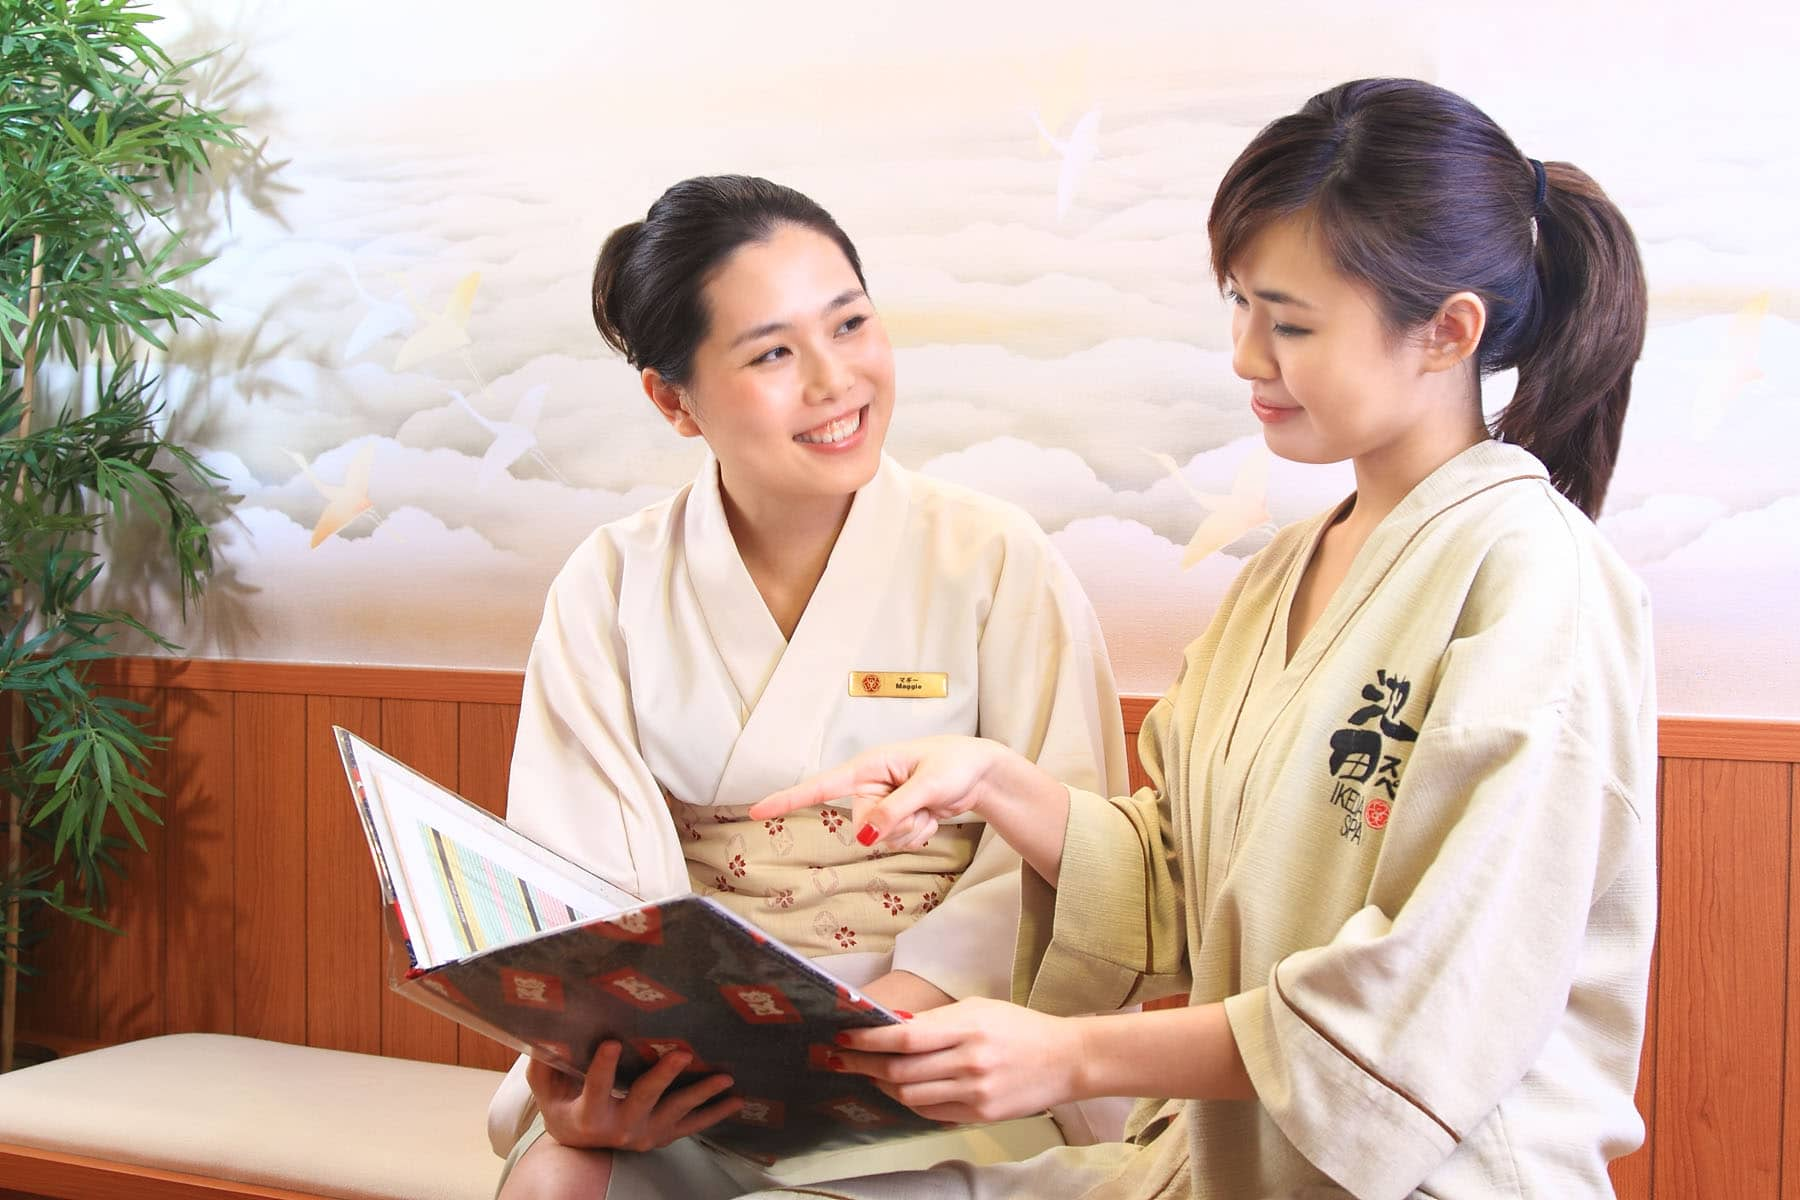 Ikeda Spa therapist showing the spa menu to customers